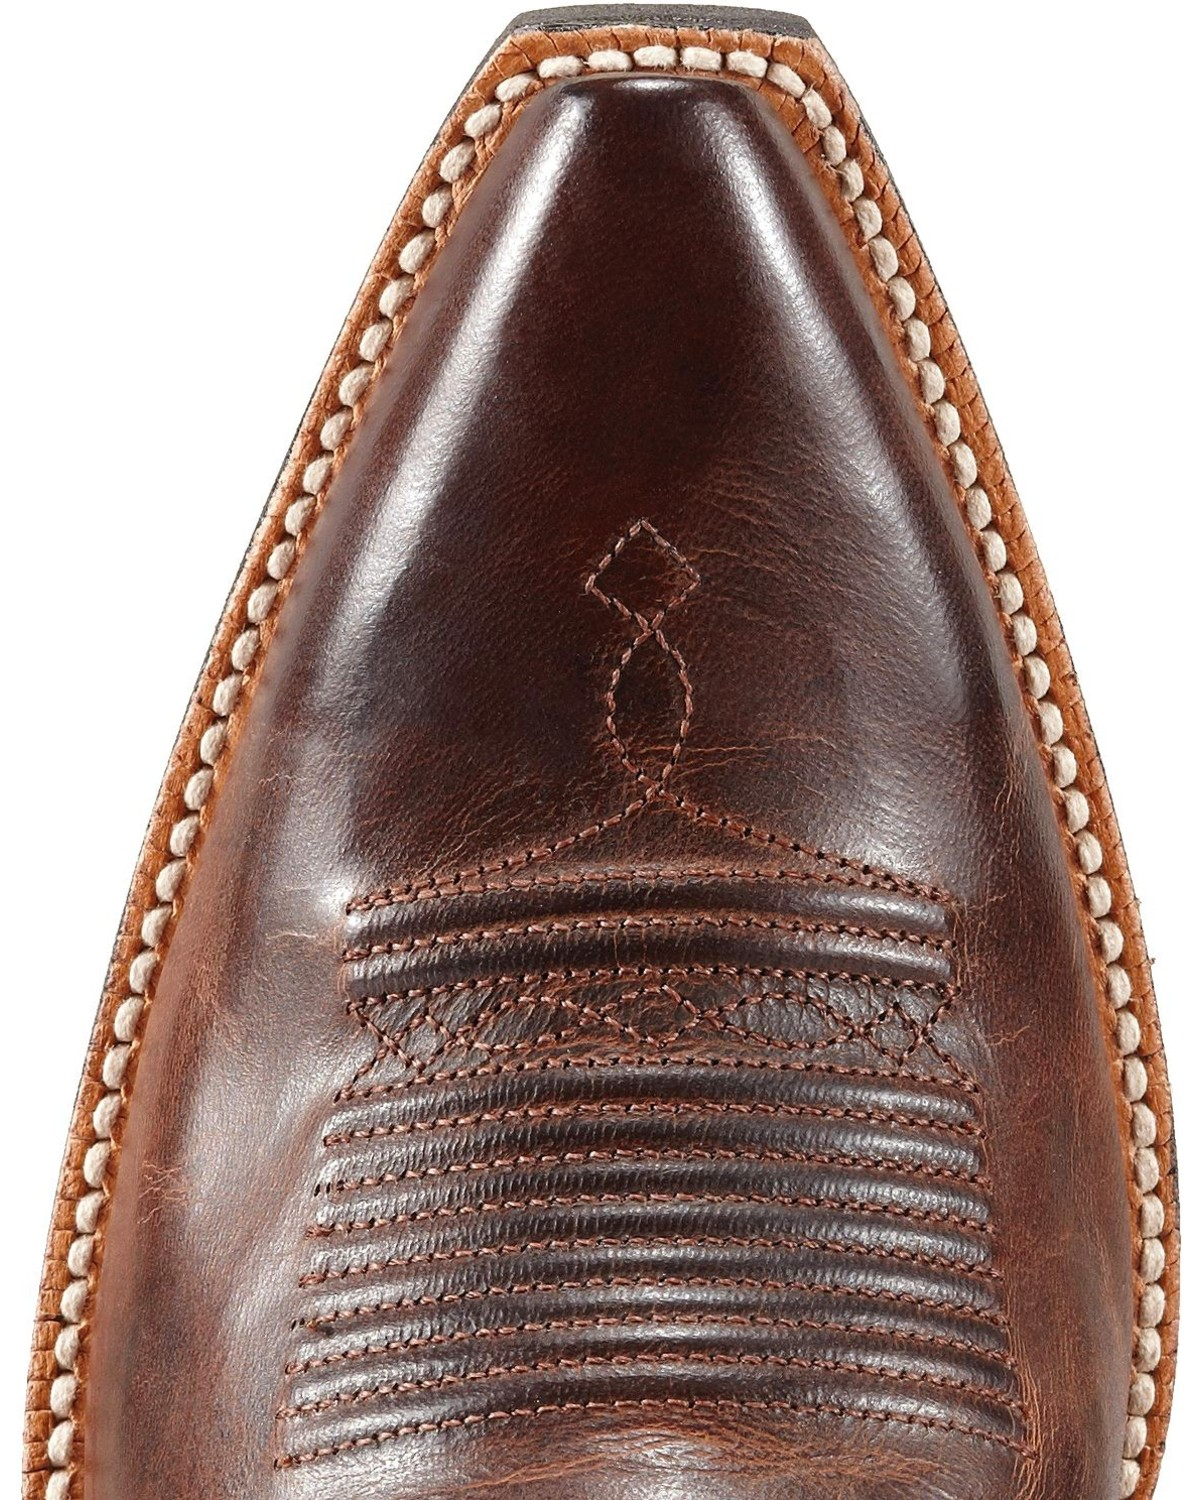 Ariat Alabama Cowgirl Boots - Snip Toe - Country Outfitter